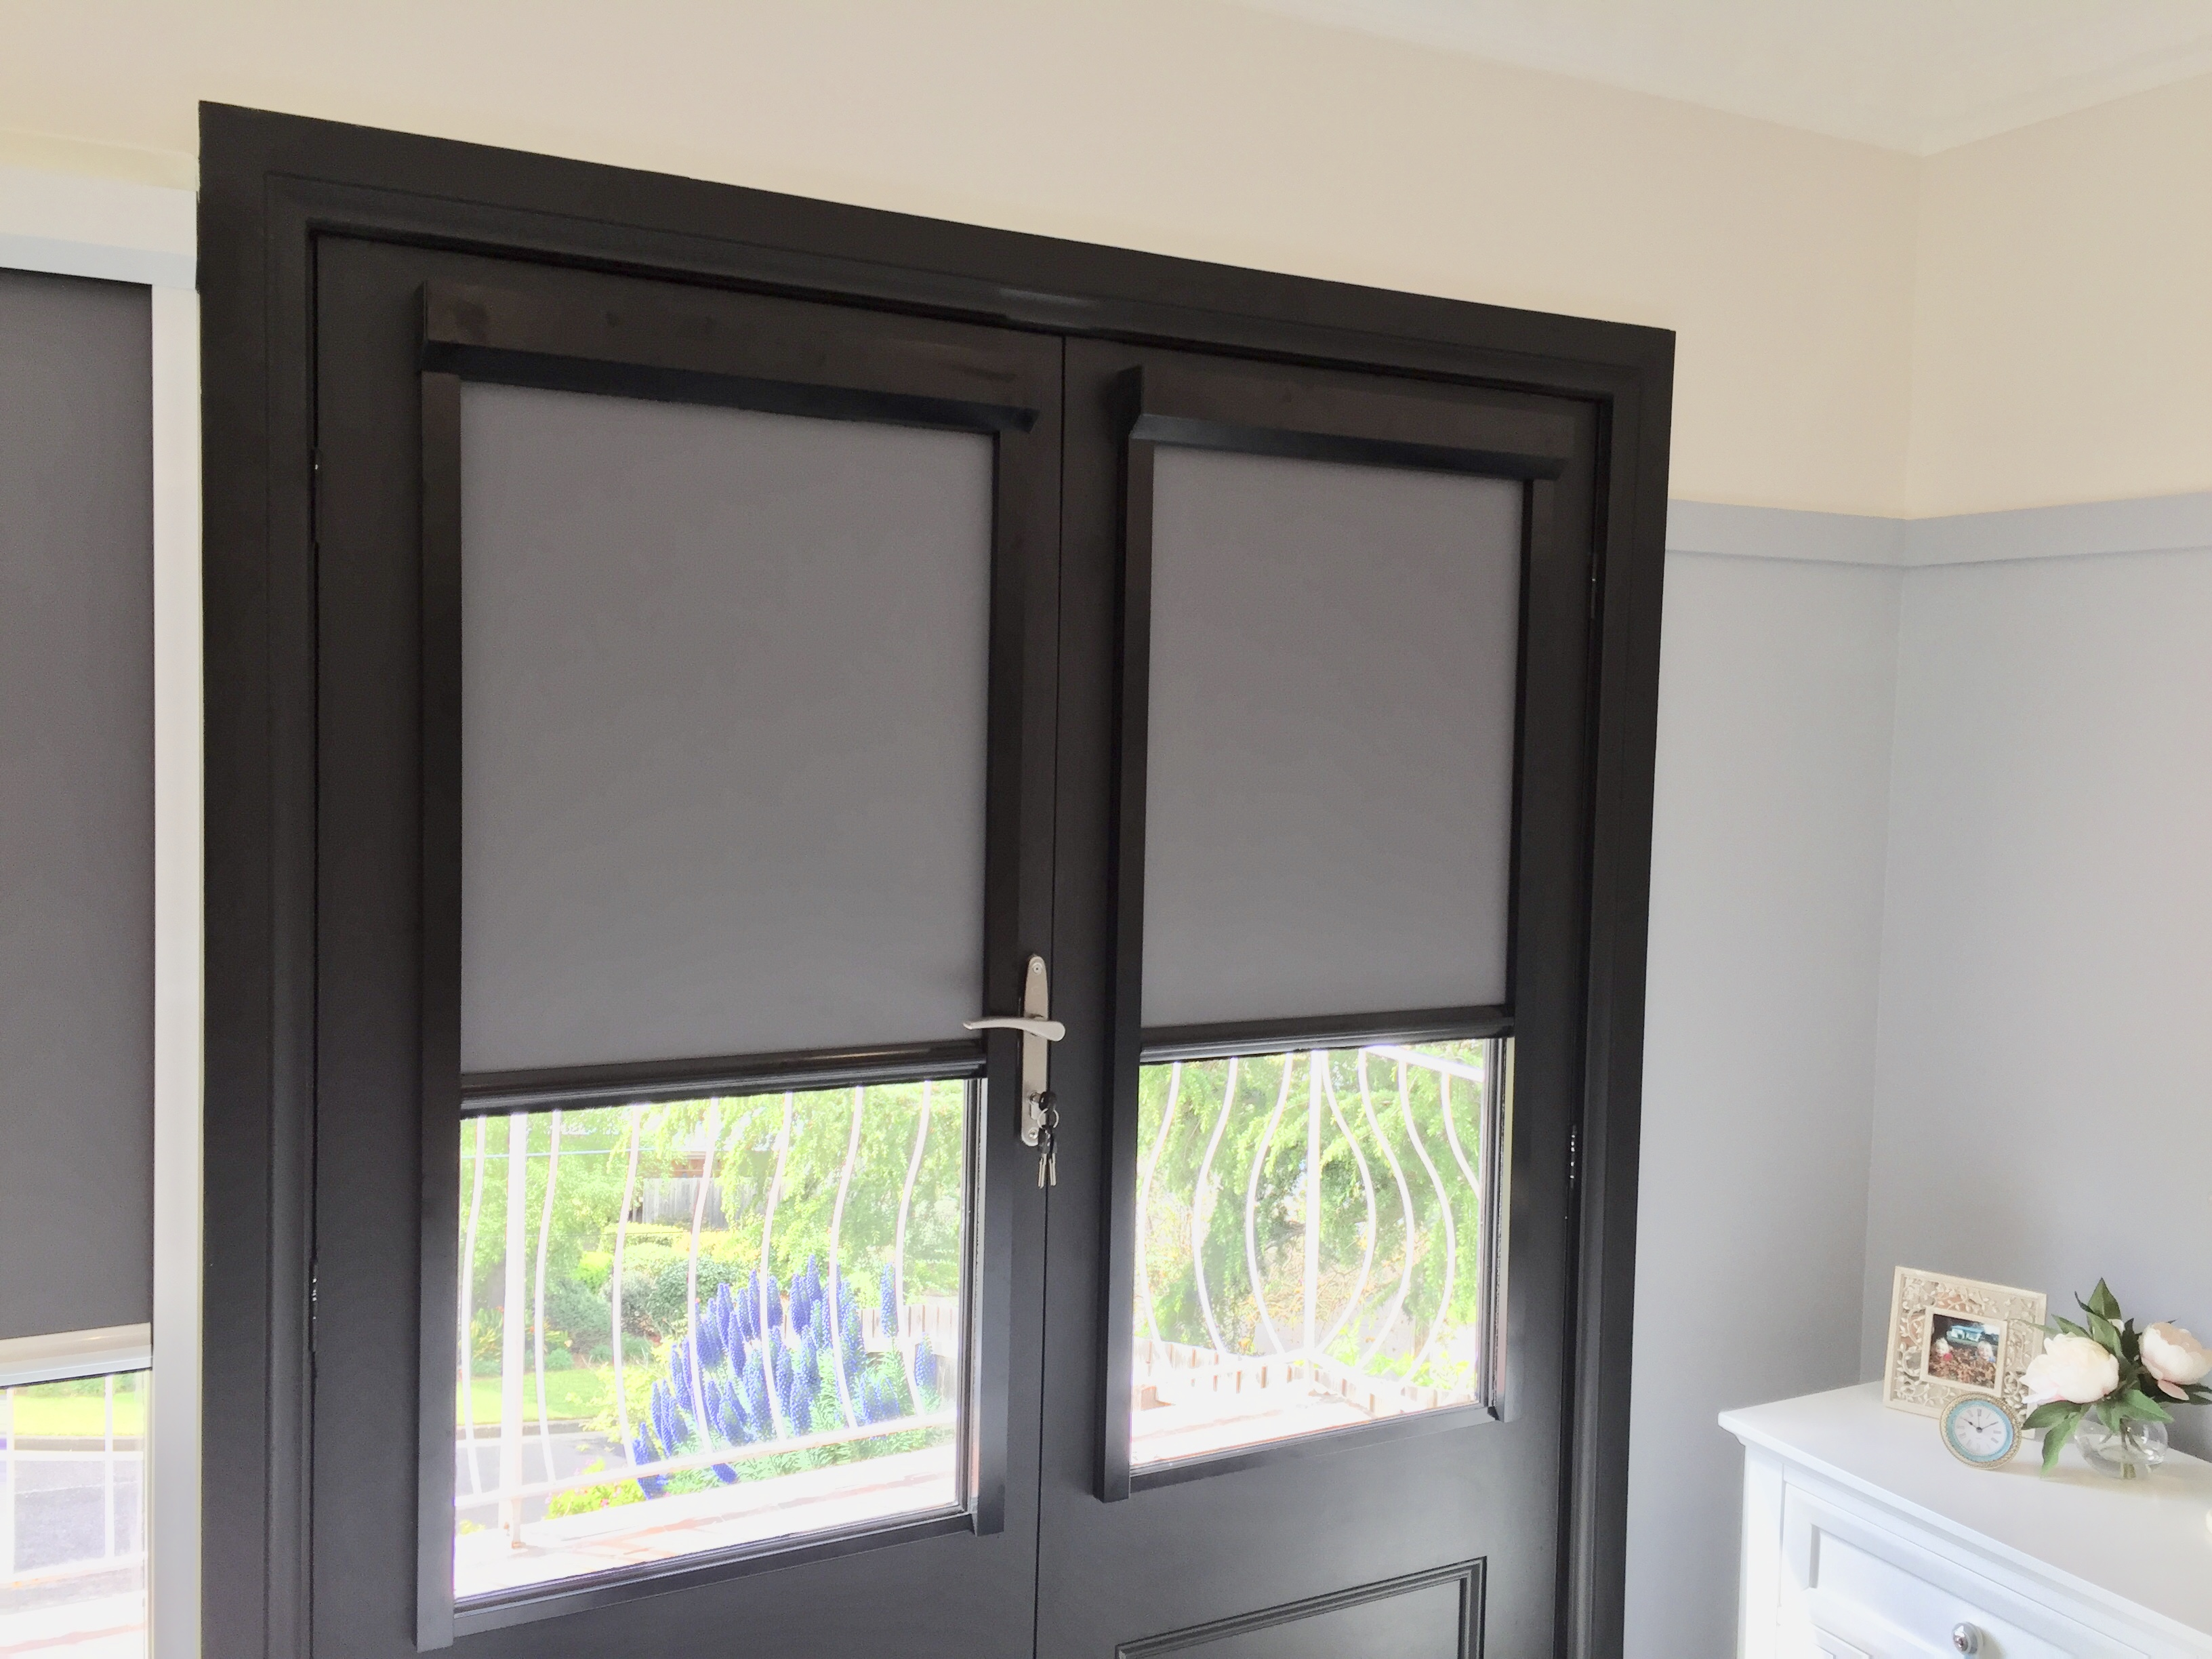 Great ... Screenaway Blind, Giving You Privacy Through Those Glass Doors With The  Blinds Being Able To Be Fixed, Much Better Option Than The Roller Blinds  That ...